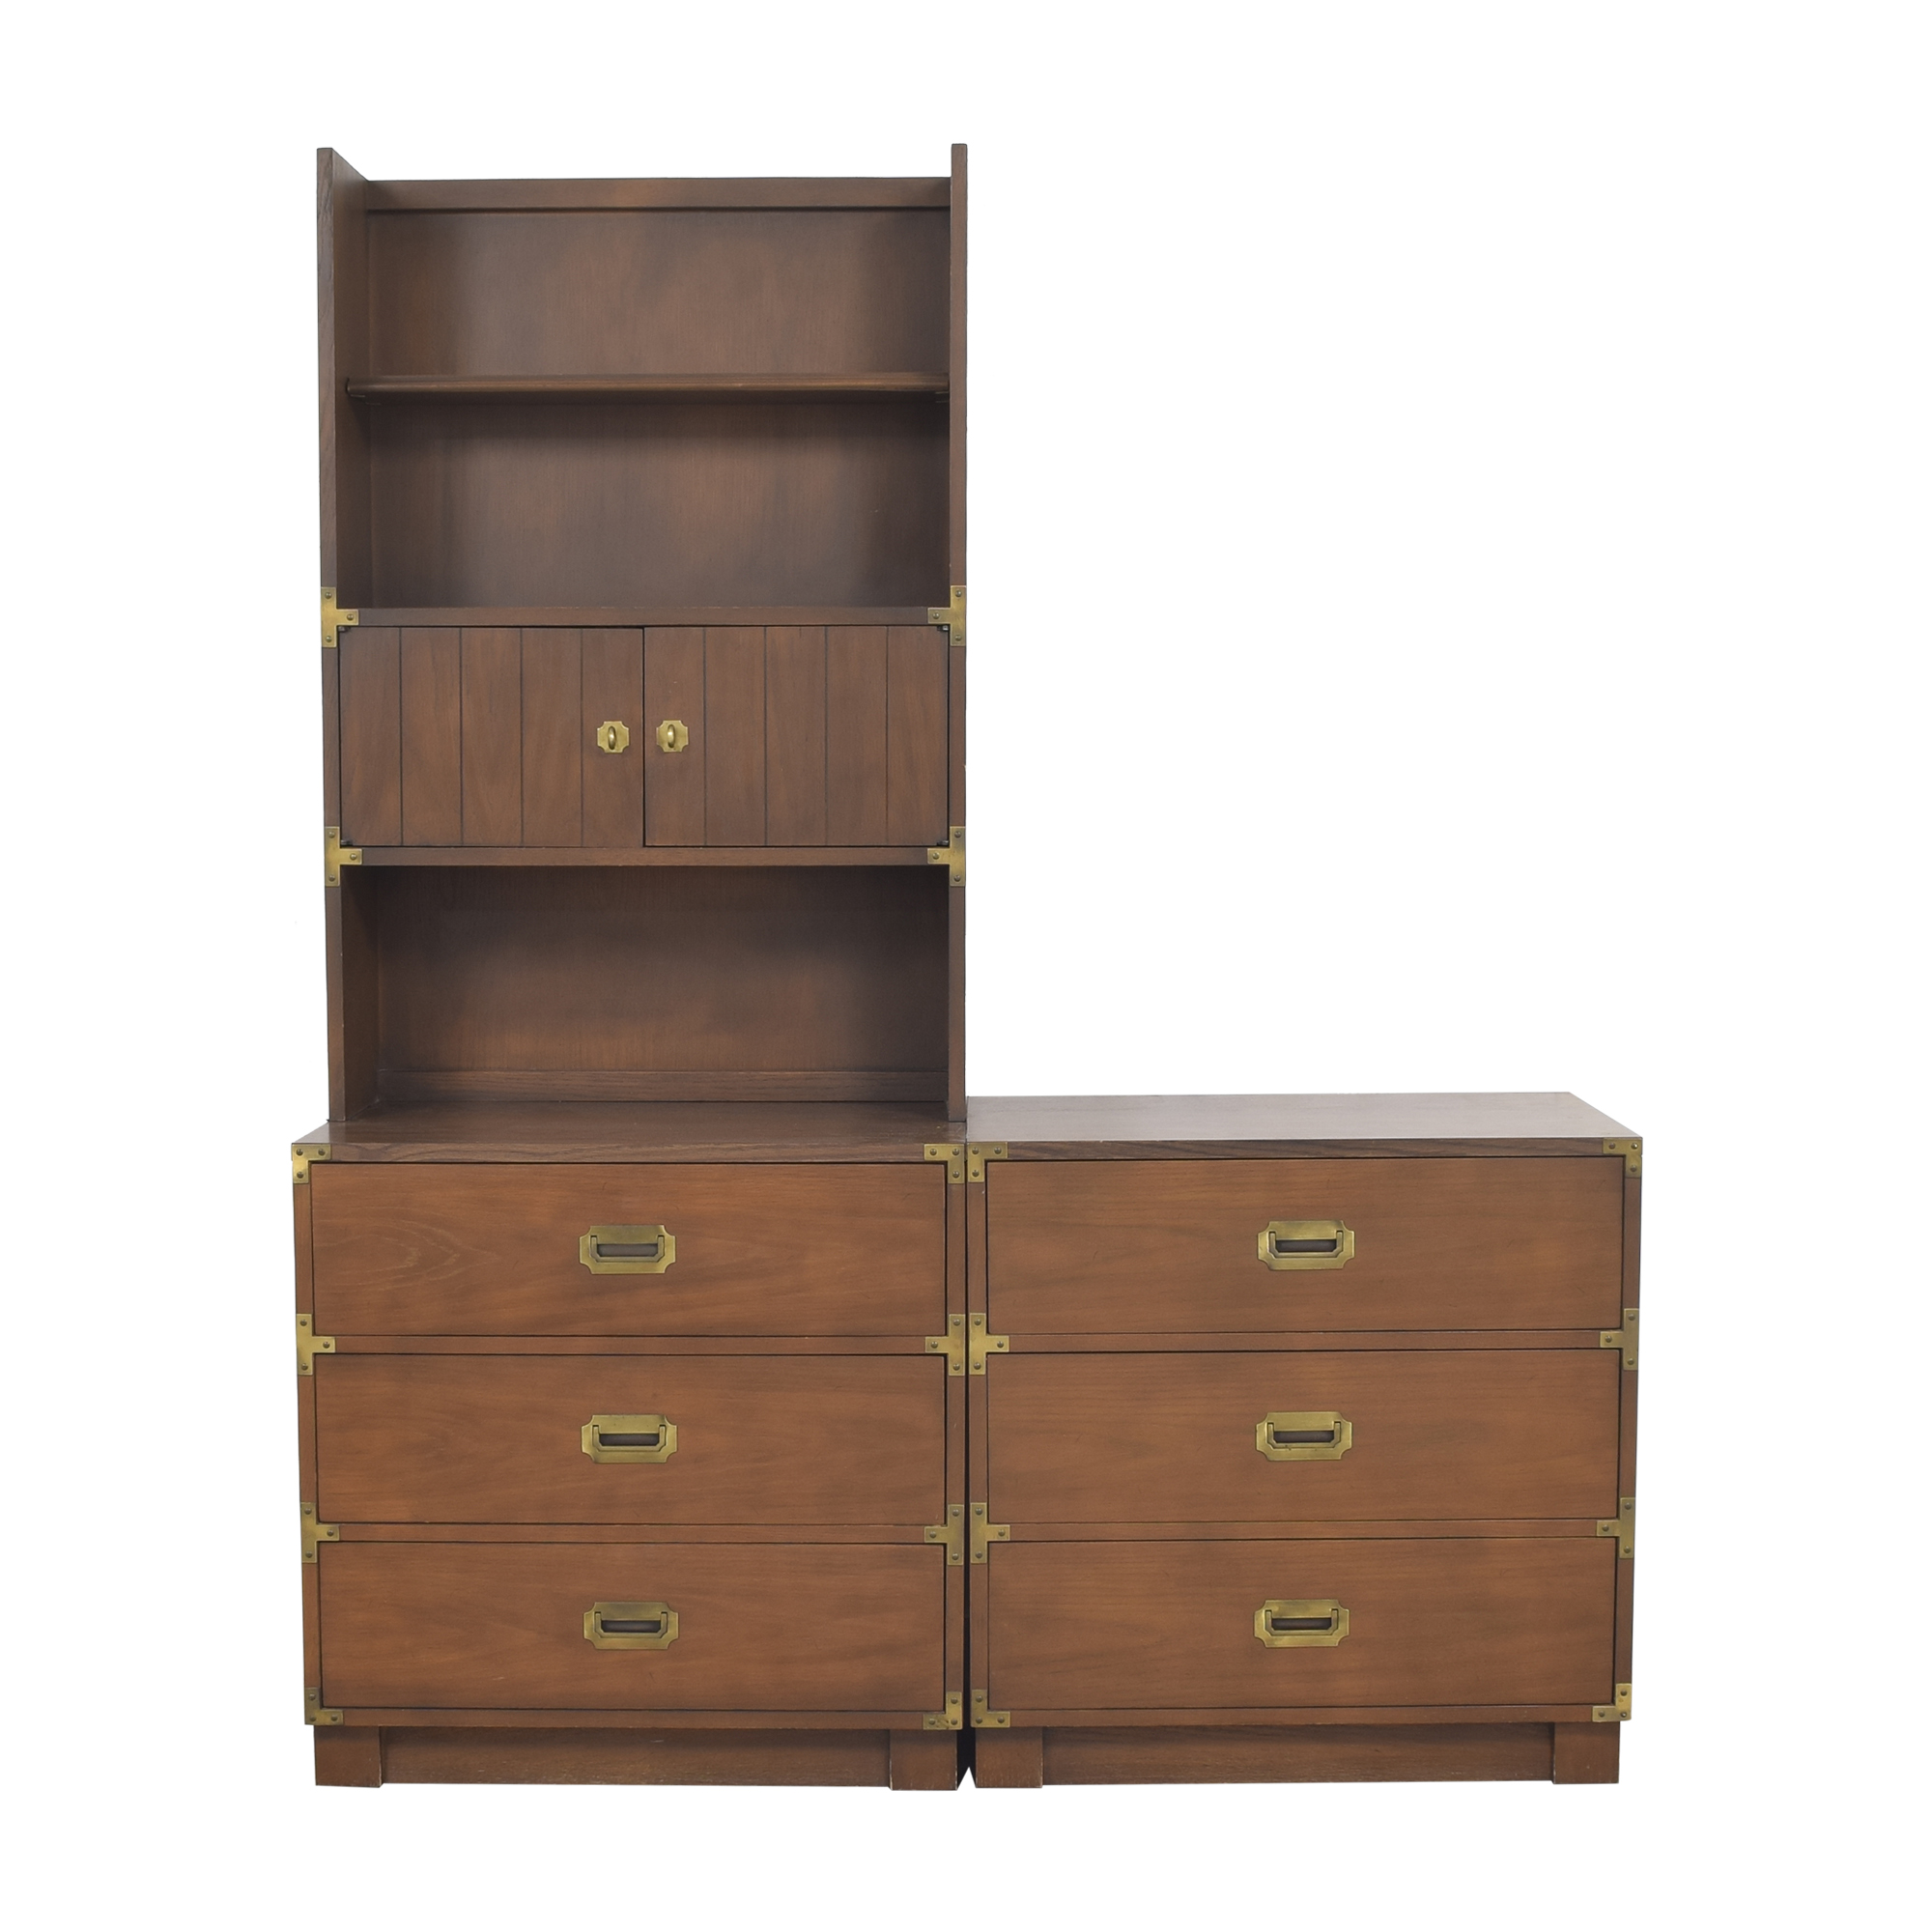 Drexel Drexel Firstmate Three Drawer Dressers with Hutch ma